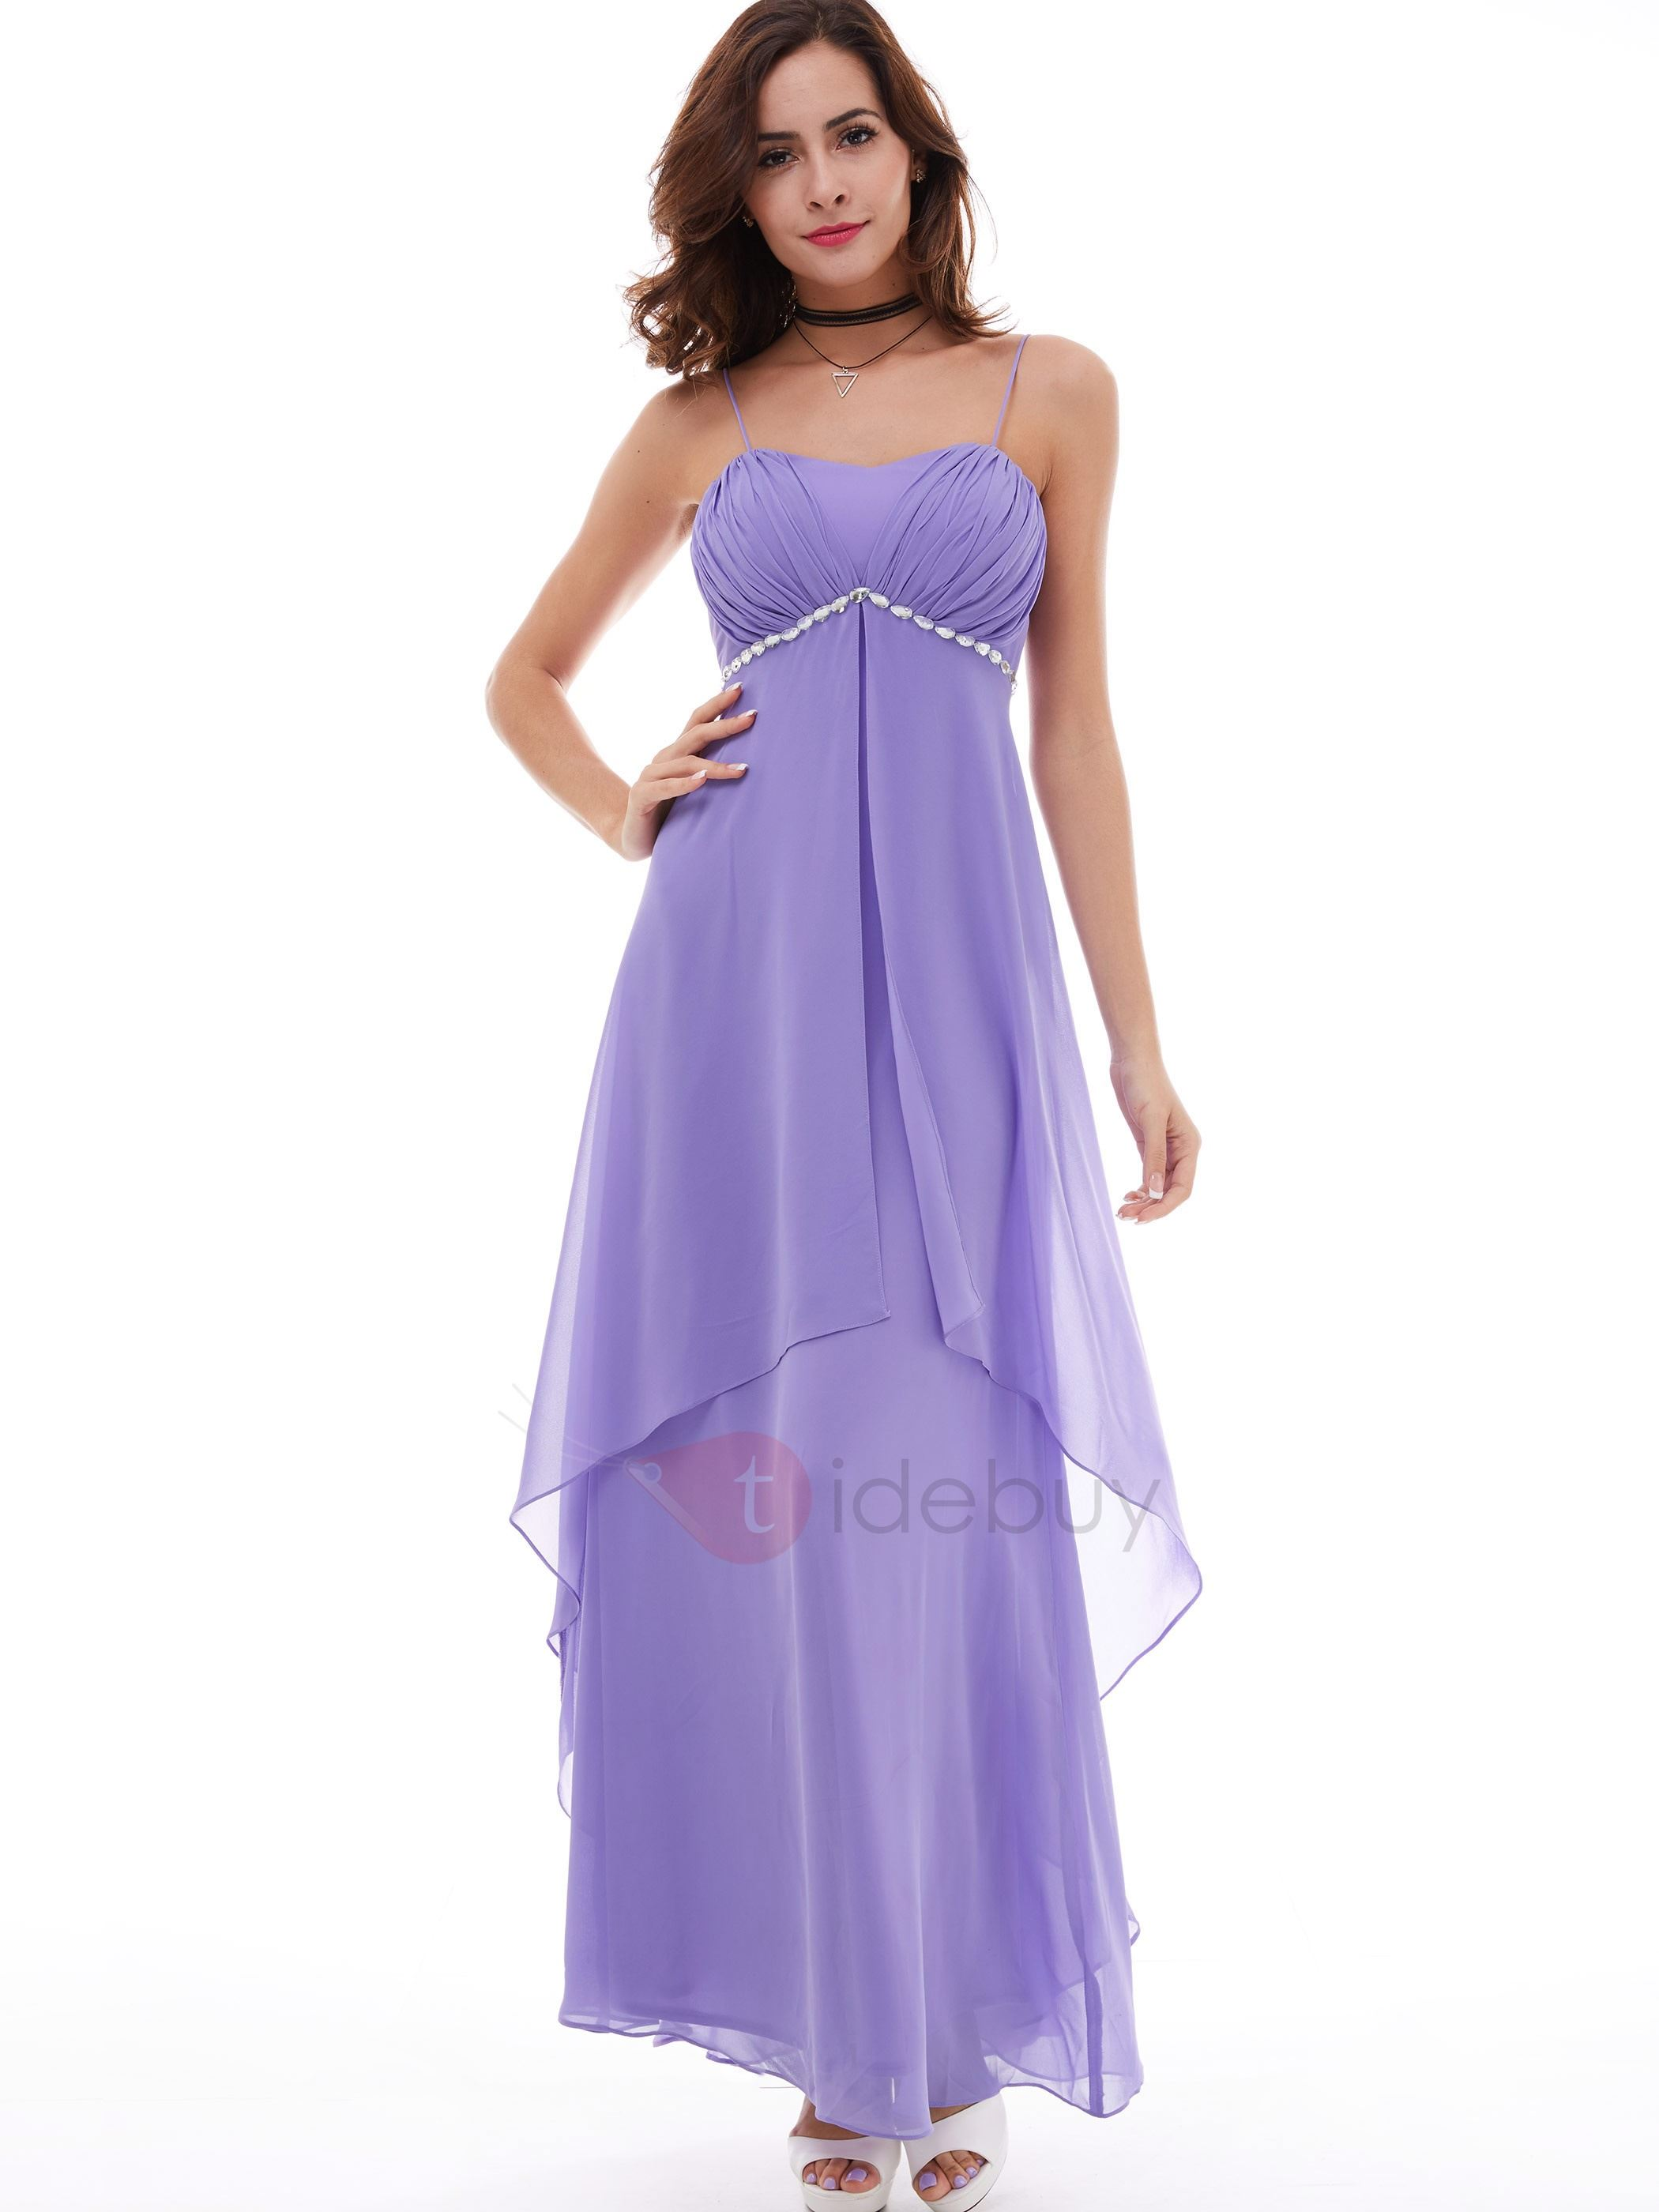 Charming Spaghetti Straps Empire Waist Beaded Evening Dress